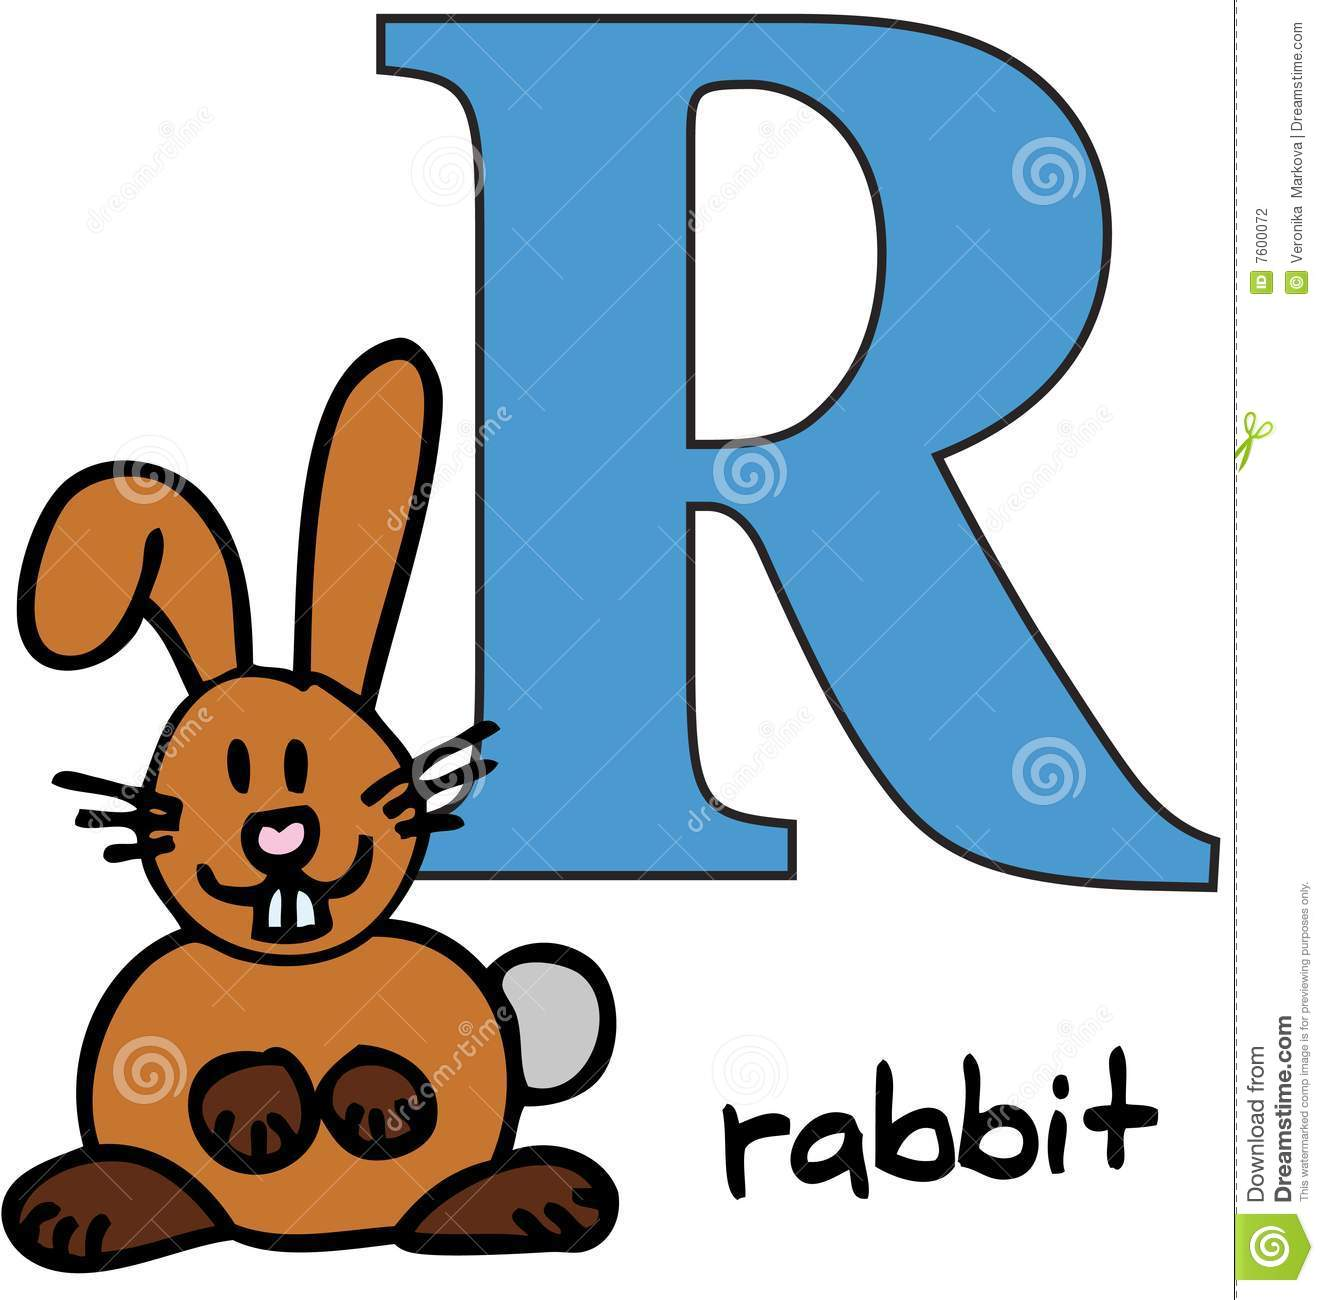 R Alphabet Images Animal alphabet R (rab...